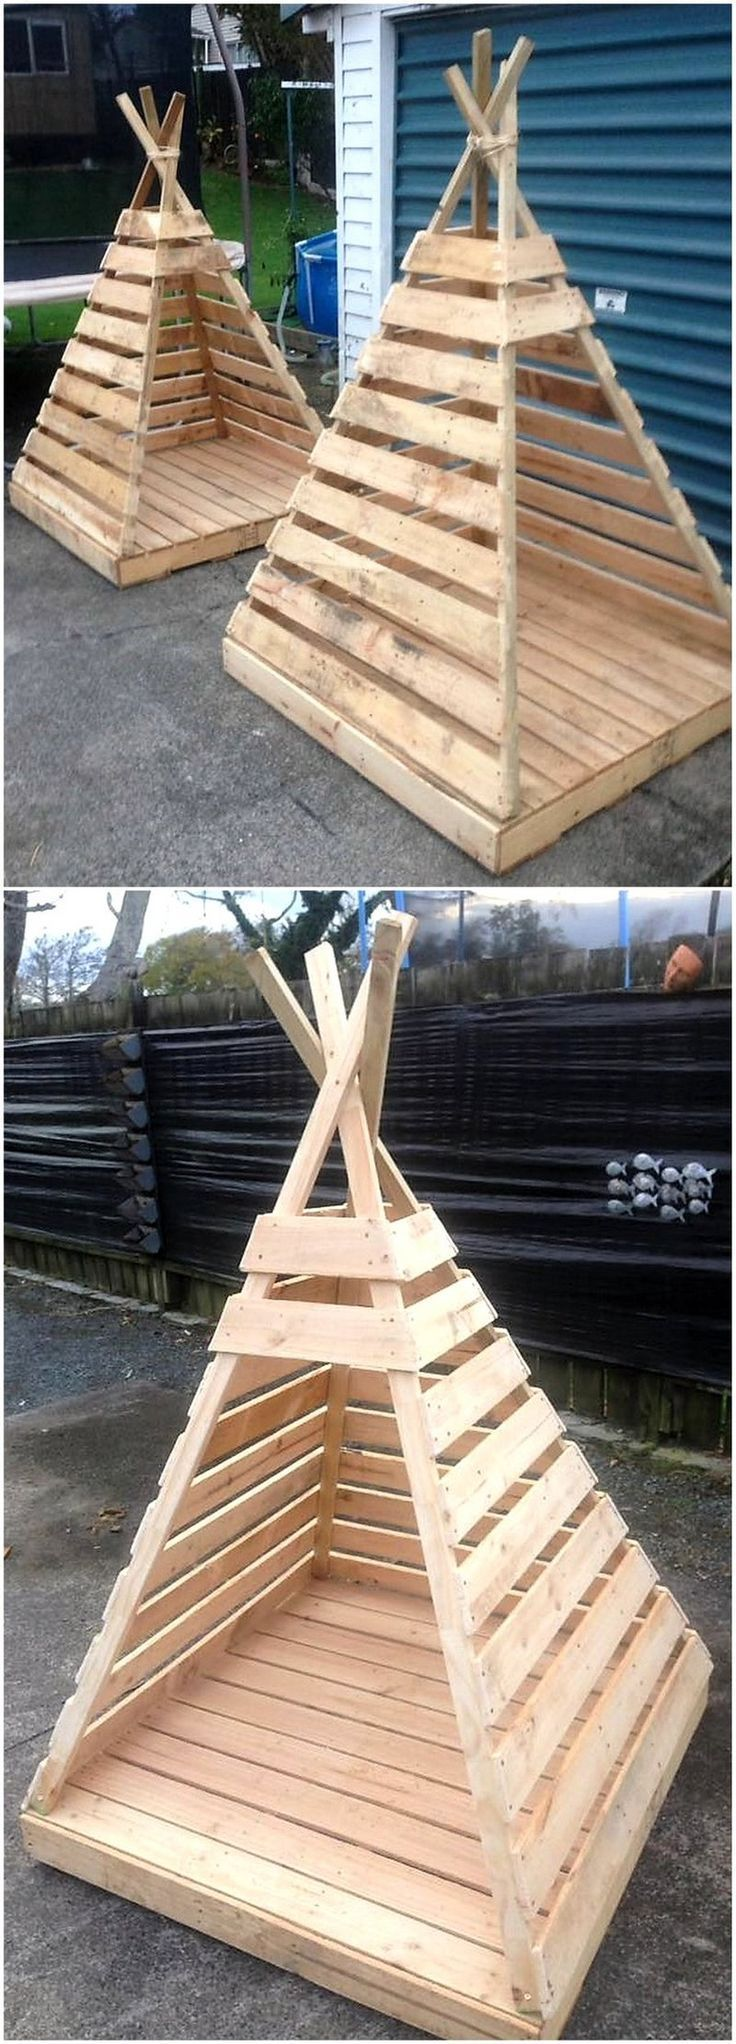 Paletten Kinderspielhaus #WoodWorking - Diyprojectgardens.club #palettengarten